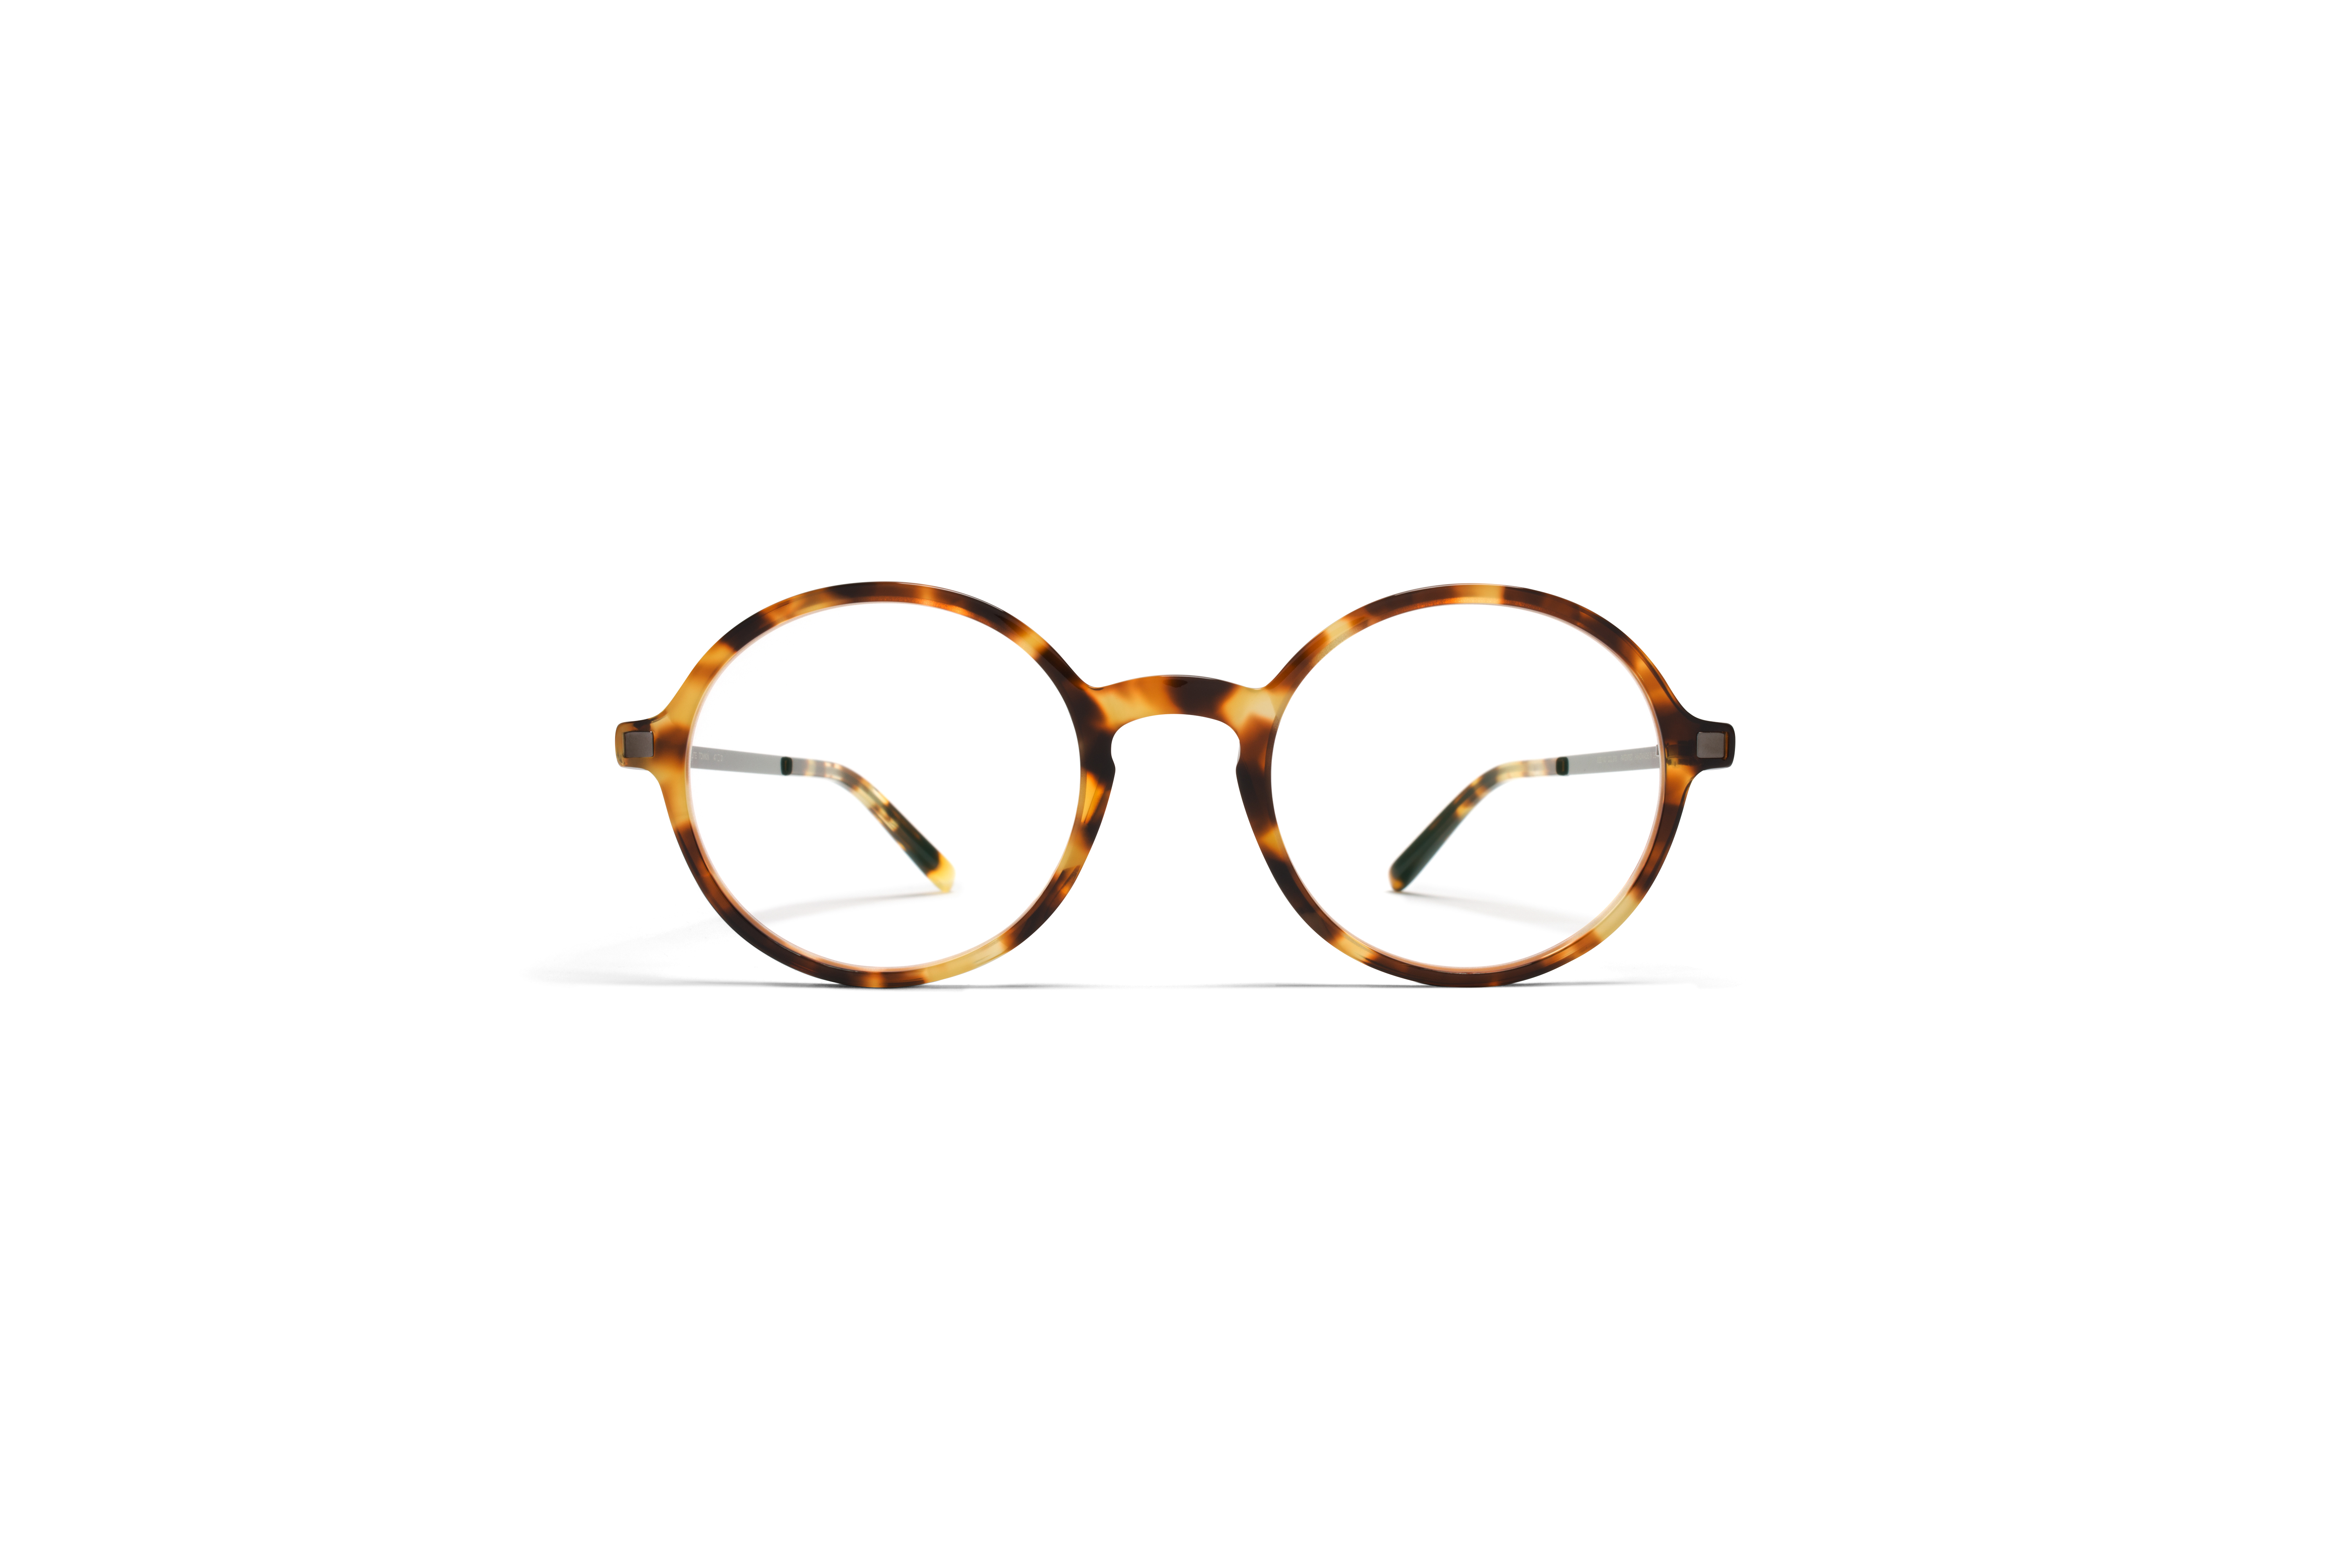 MYKITA Lite Rx Tomkin Cocoa Sprinkles Shinygraphit56b4d62a22c6c